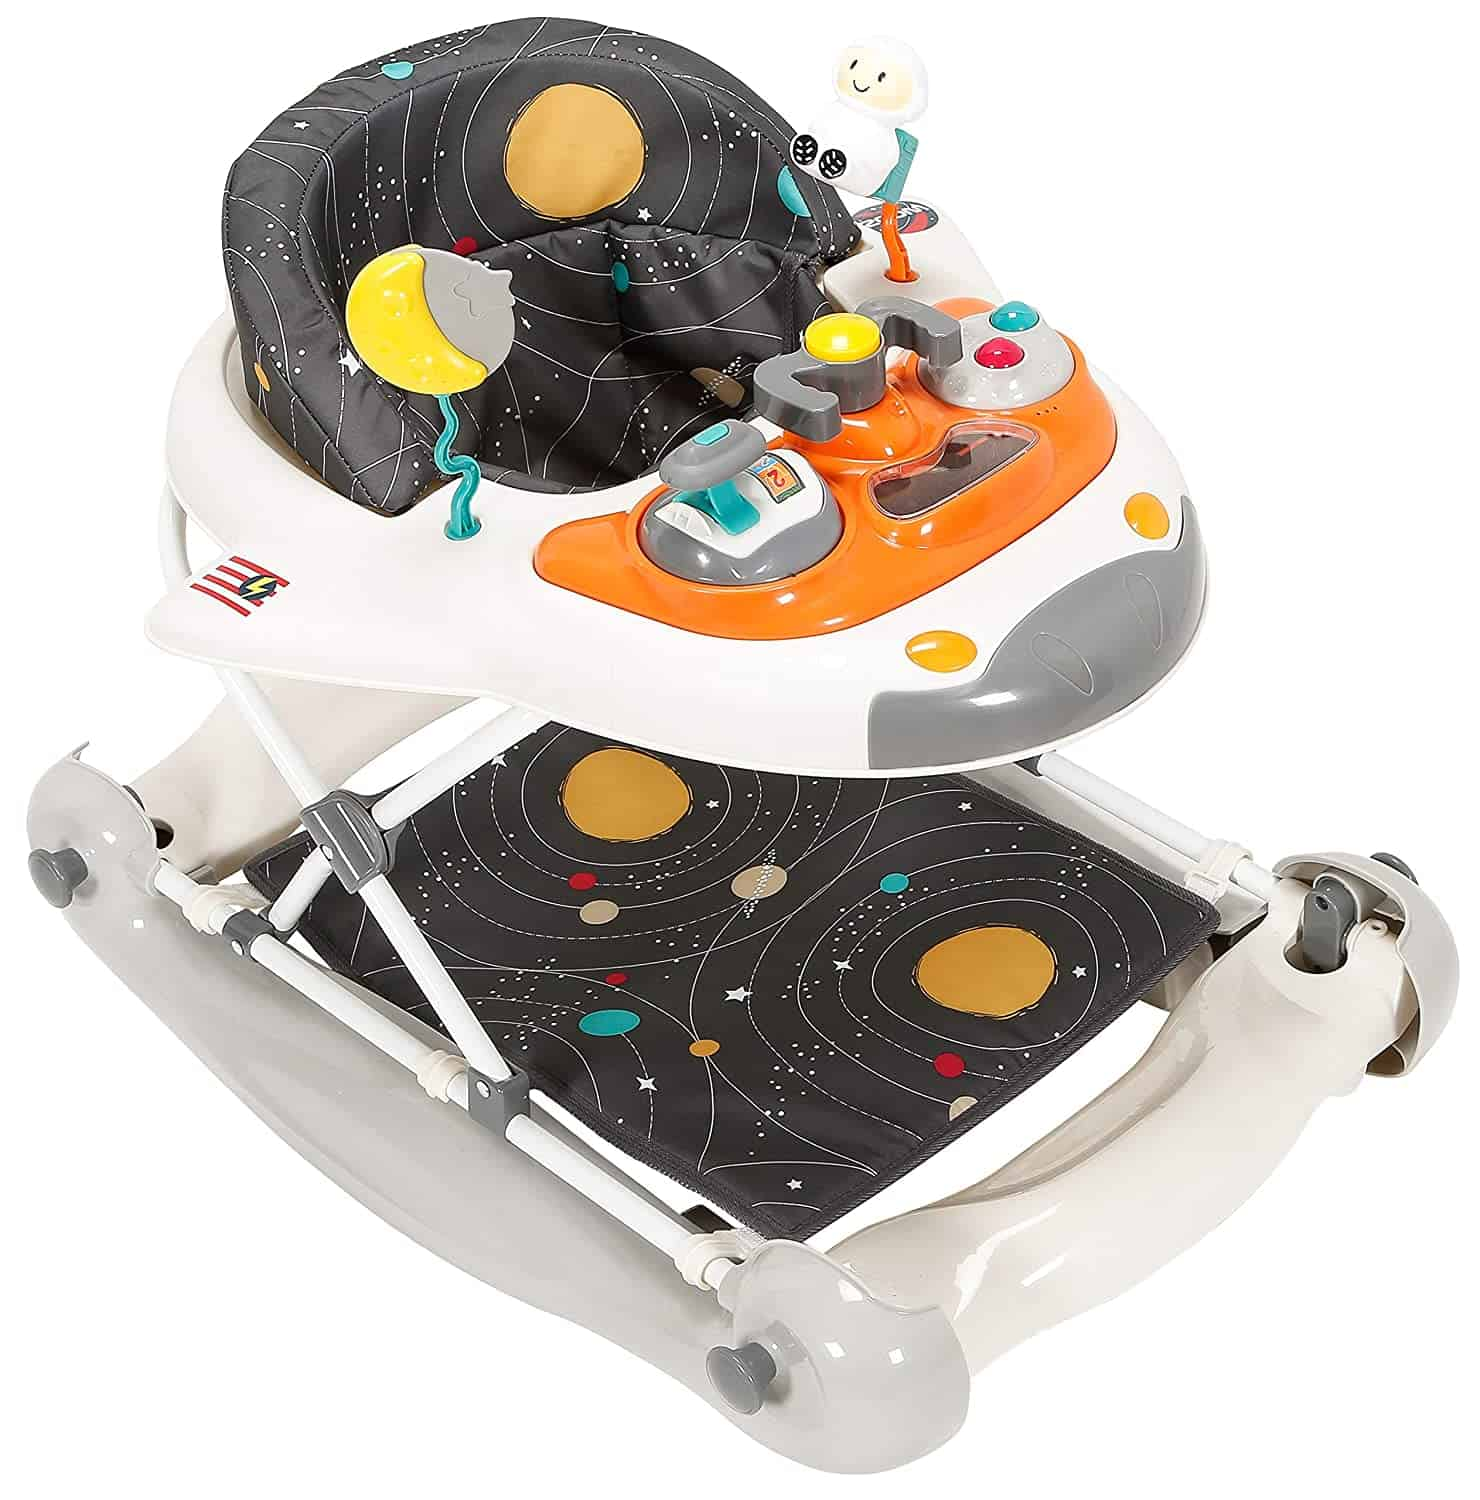 Out of this world 2 in 1 space shuttle walker.